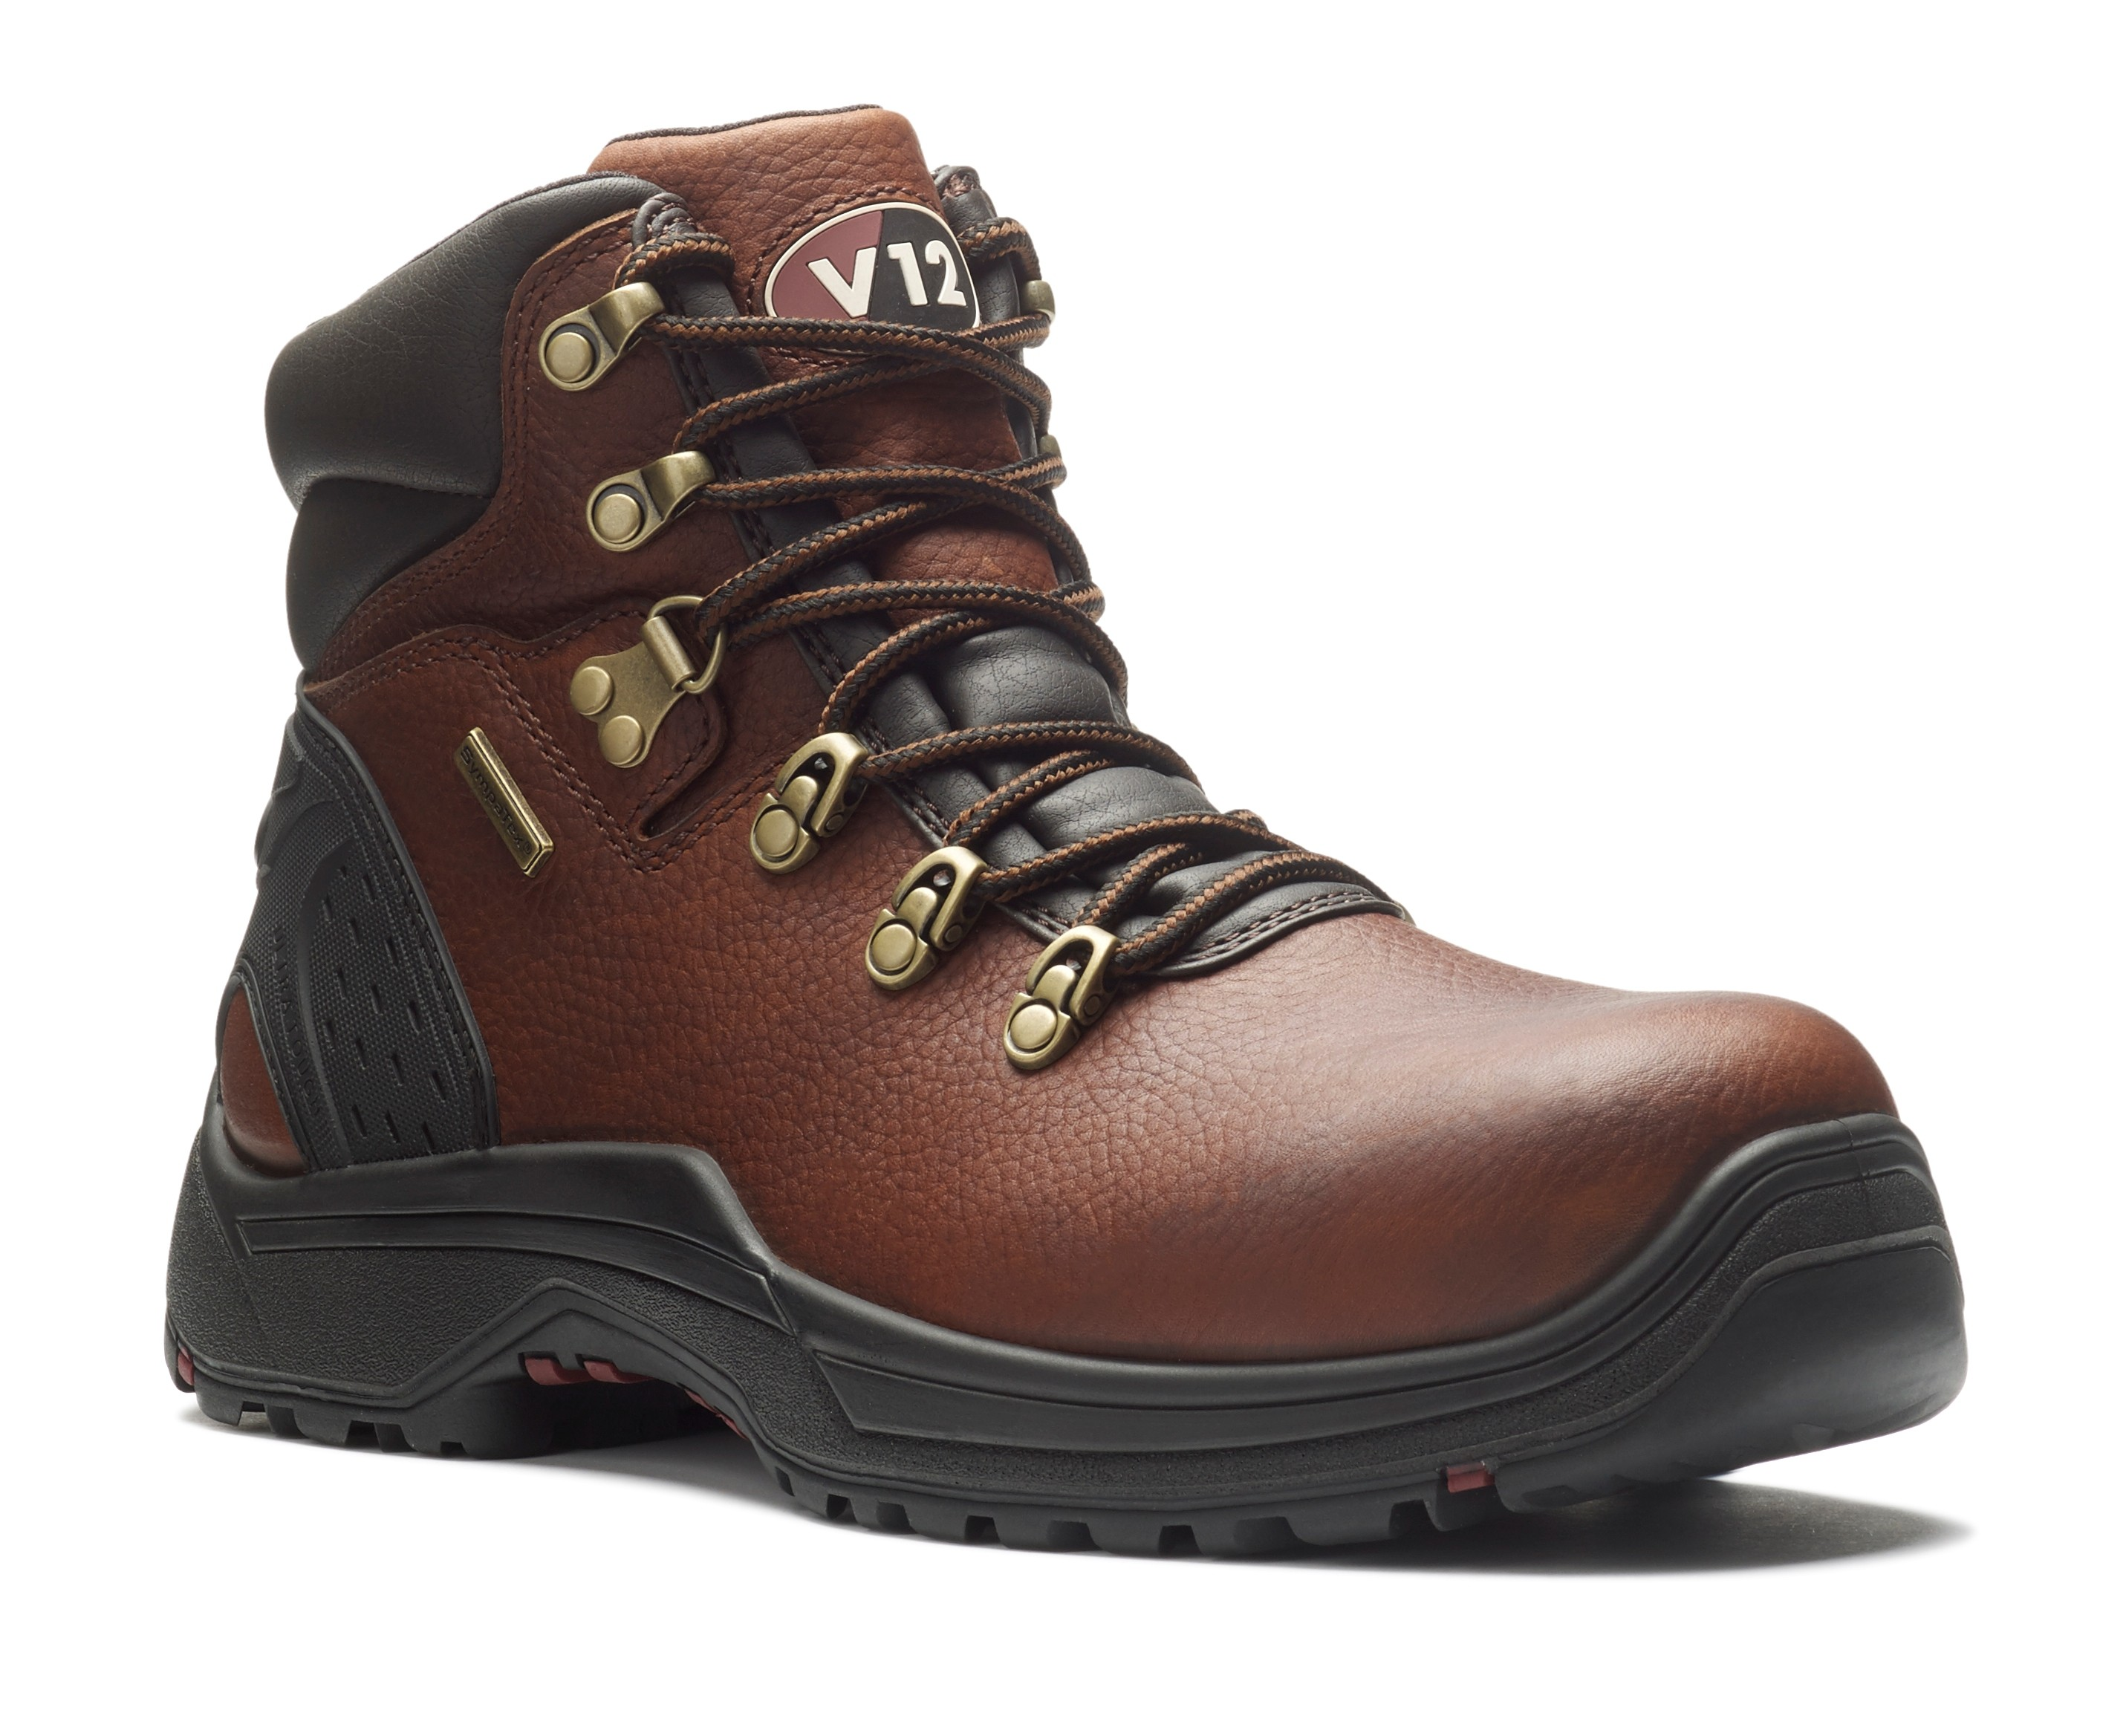 V12 STORM IGS Hiker Boot